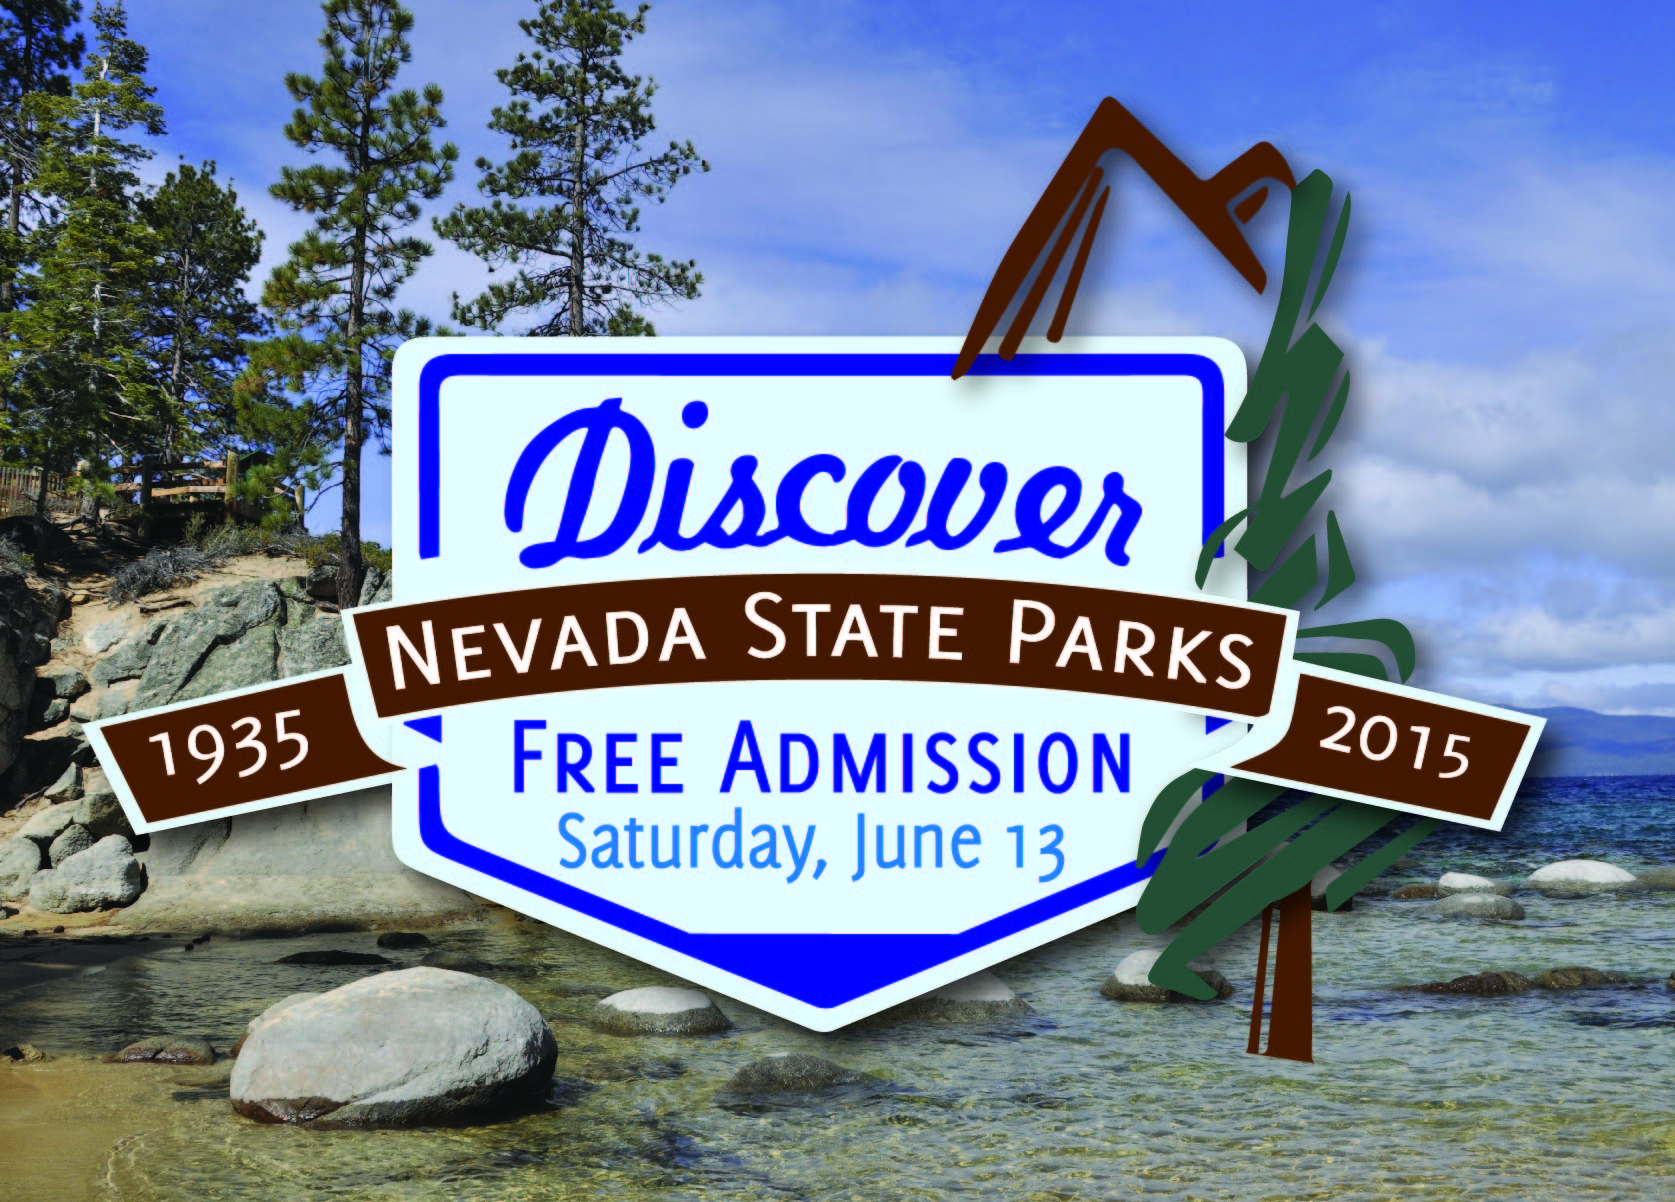 """Discover Nevada State Parks"" Day on Saturday, June 13th"